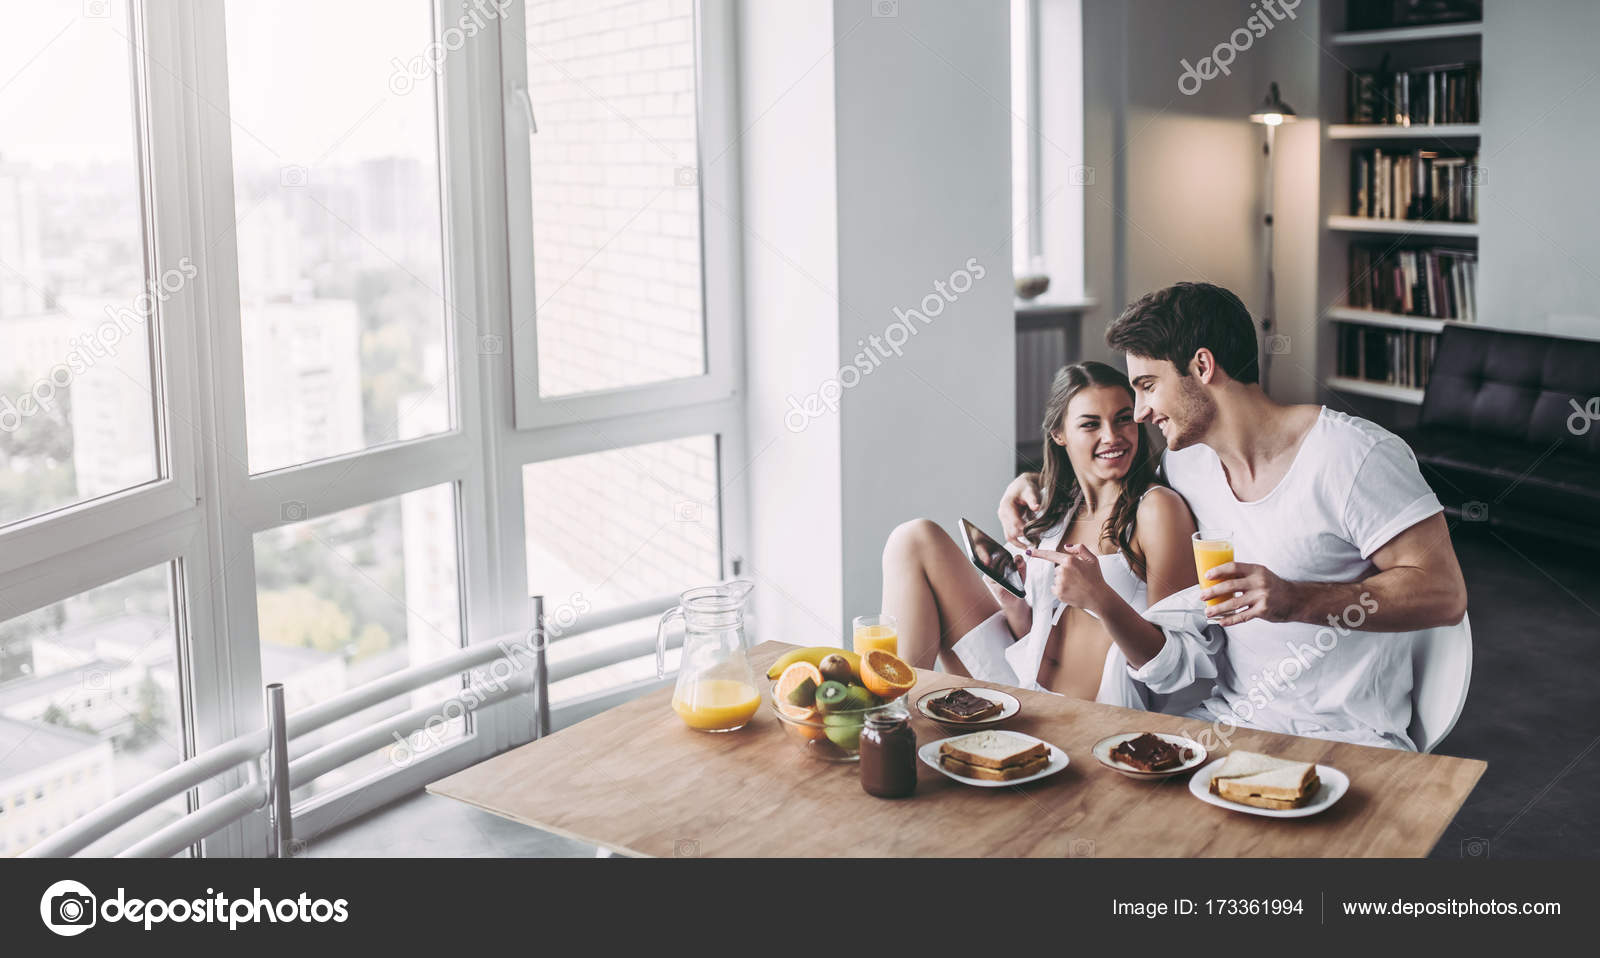 Couple on kitchen — Stock Photo © 4pmphoto@gmail.com #173361994